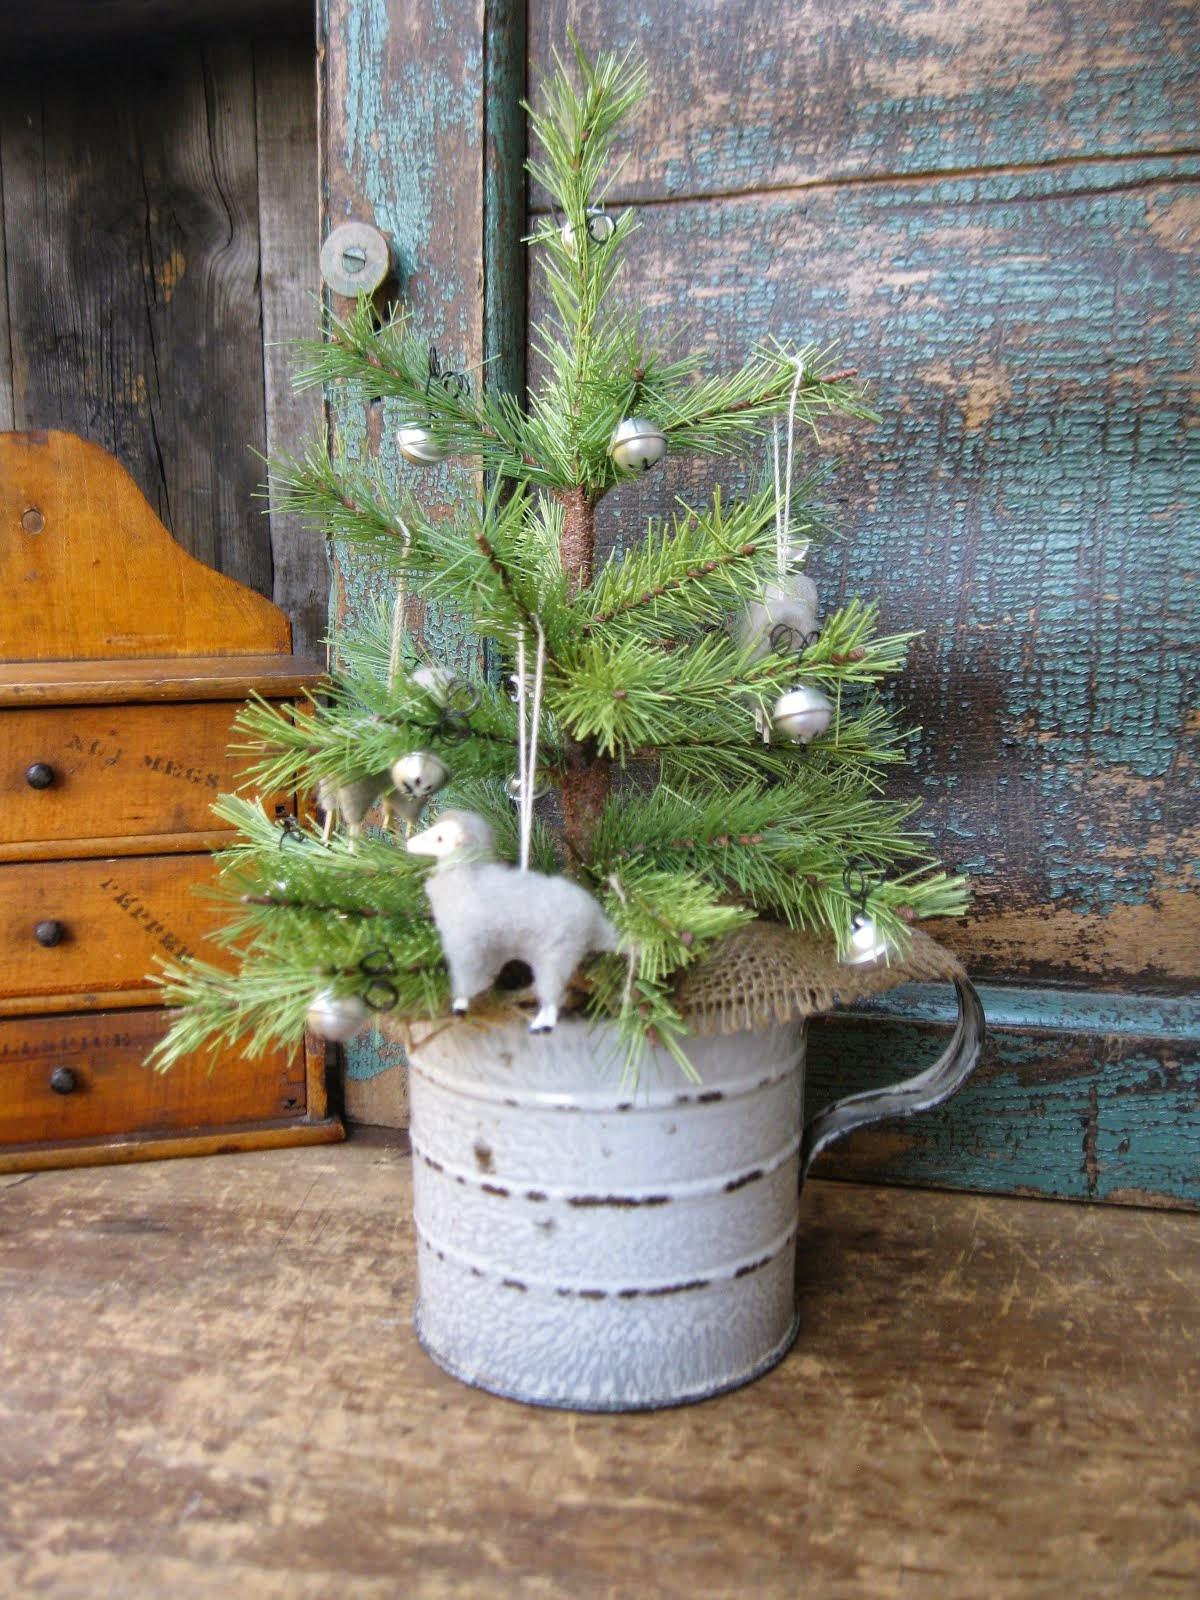 Little Lamb Tree